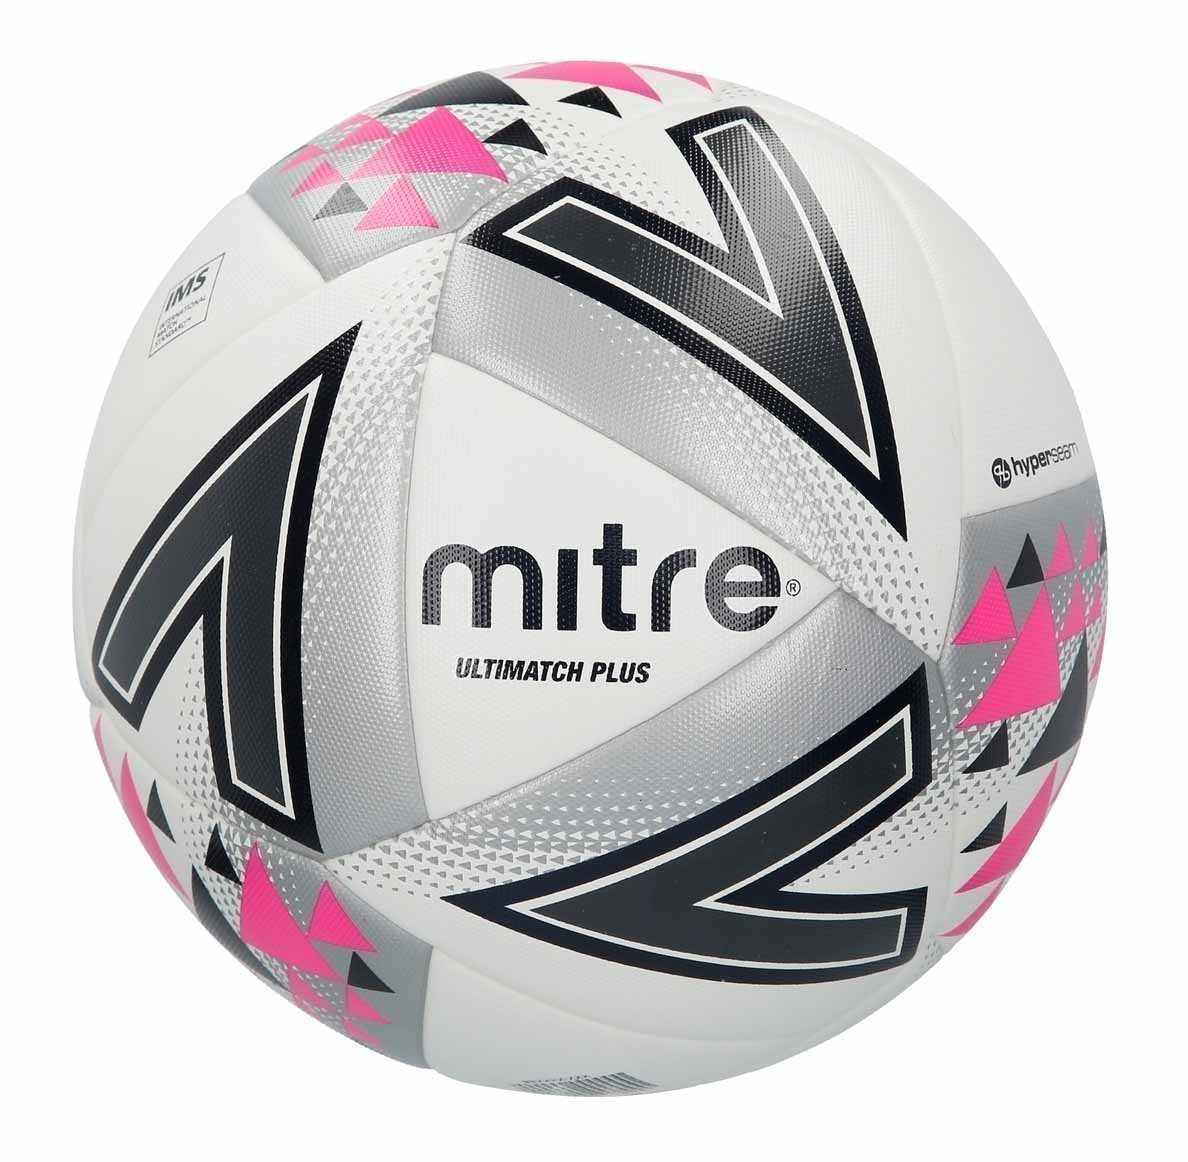 Mitre Ultimatch Plus Hyperseam Football